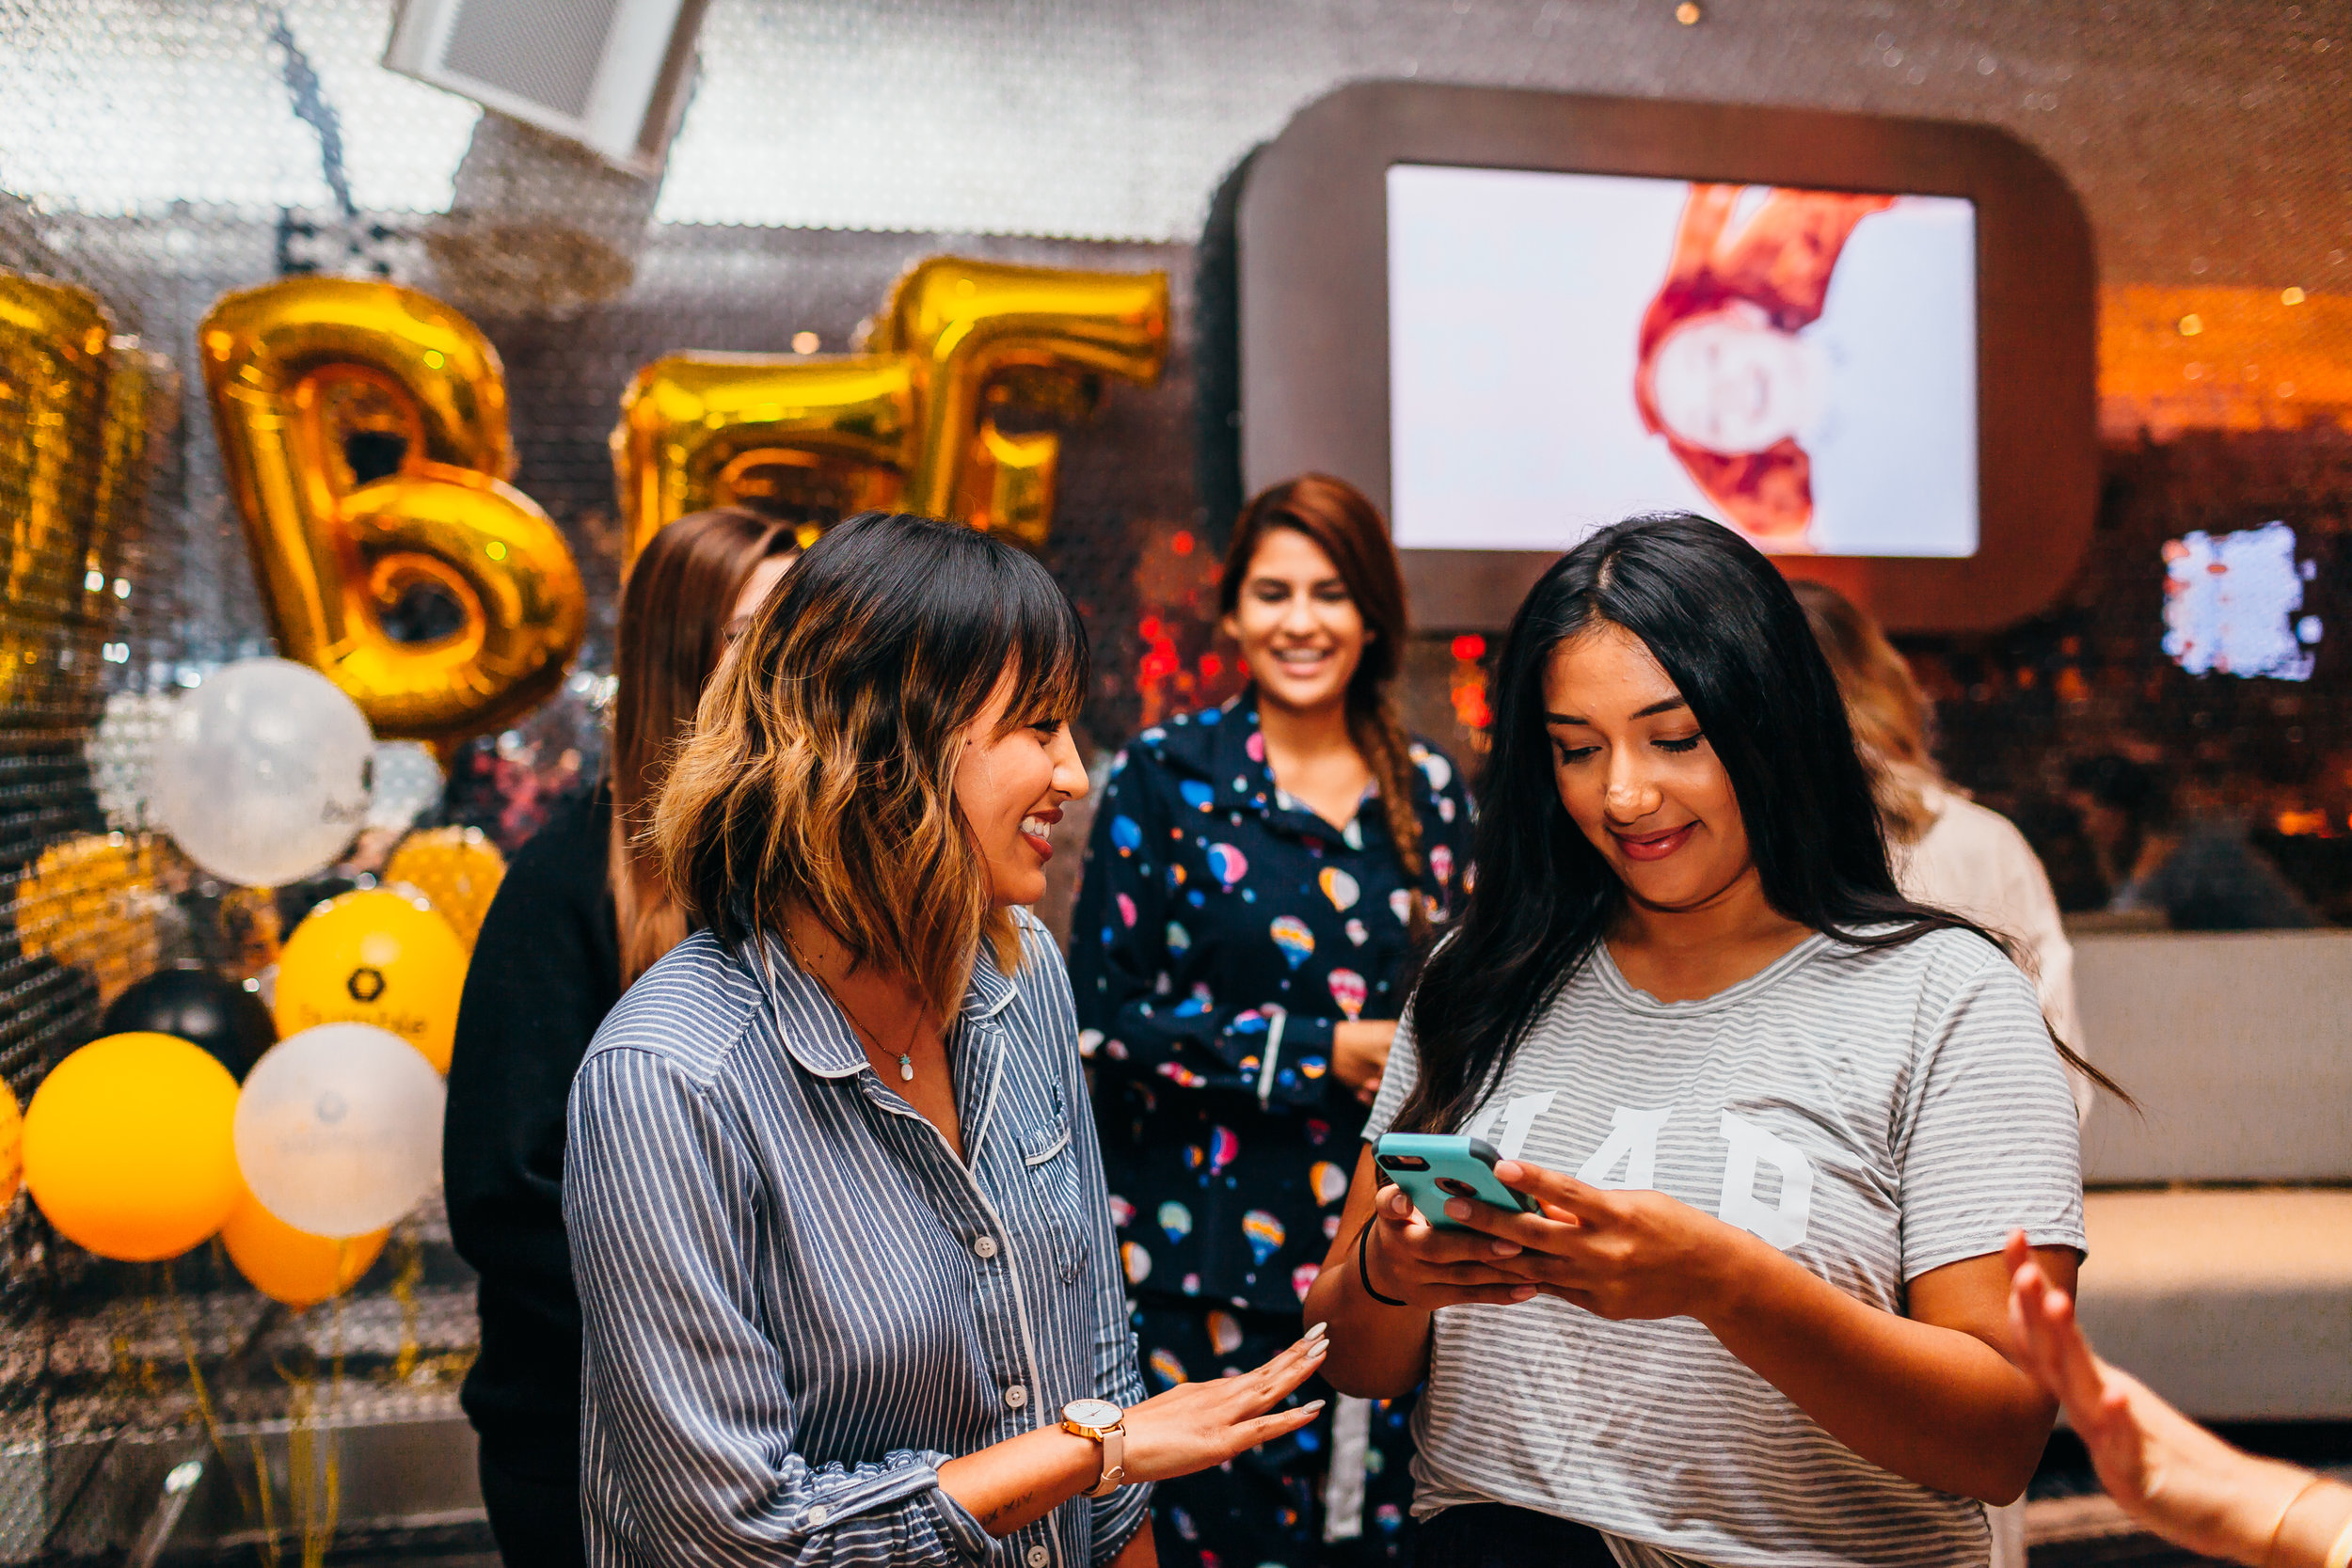 bumble-bff-dallas-launch-event-6536.jpg